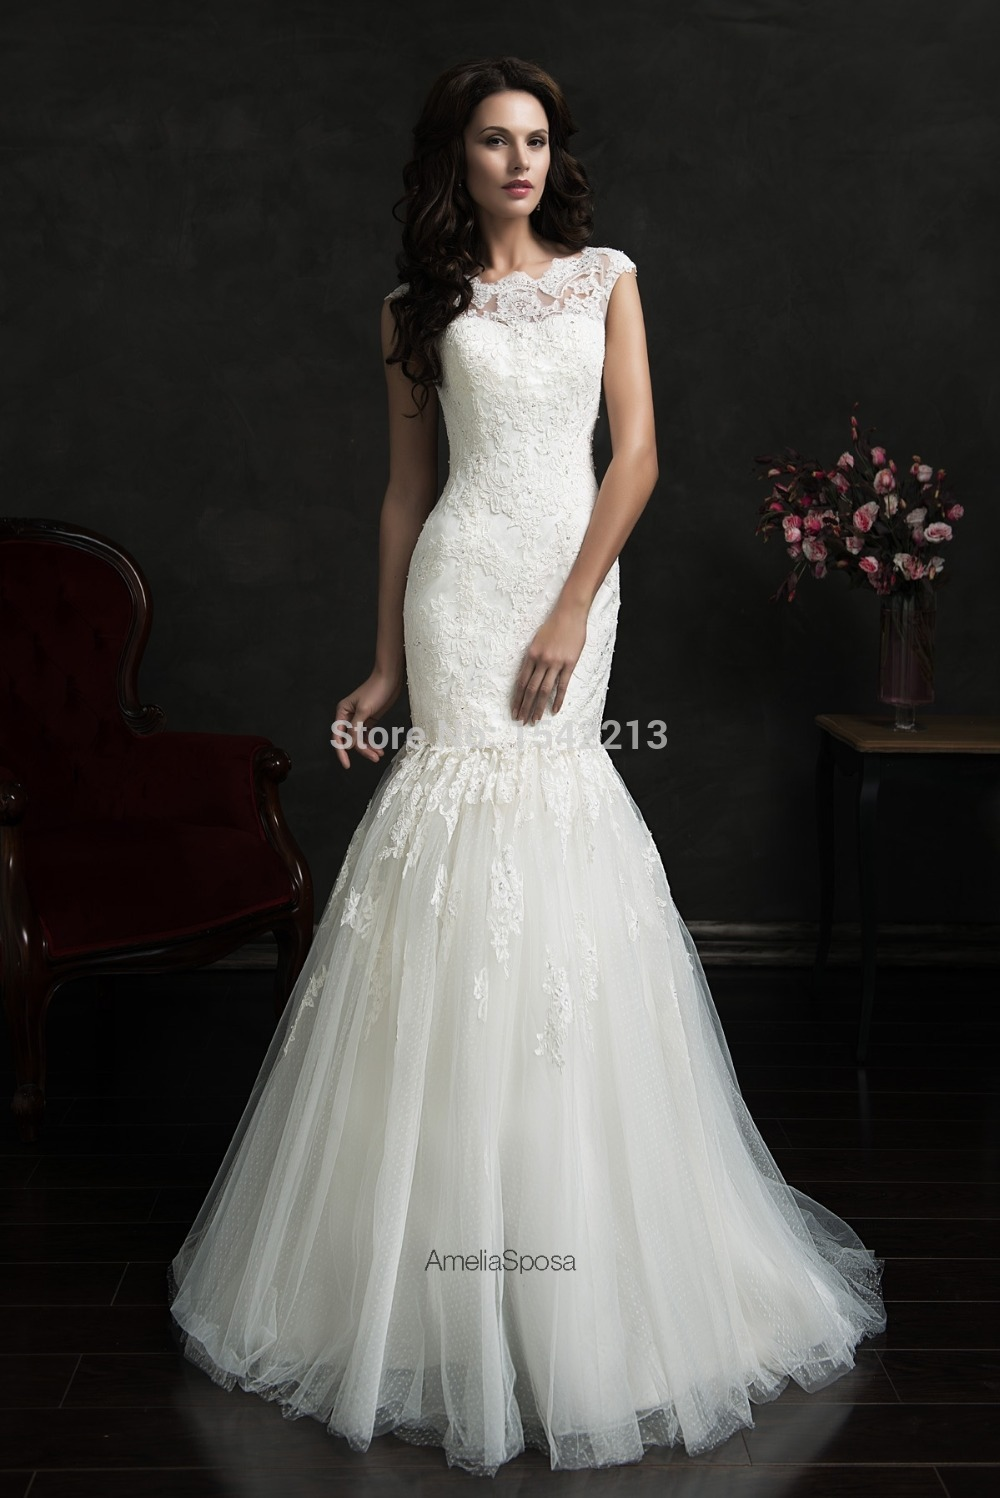 ab920d750683 Romantic Hot Sale Two In One Wedding Dresses Cap Sleeve Sexy Mermaid Bridal  Gowns High Low Short Front Long Back 2017-in Wedding Dresses from Weddings  ...